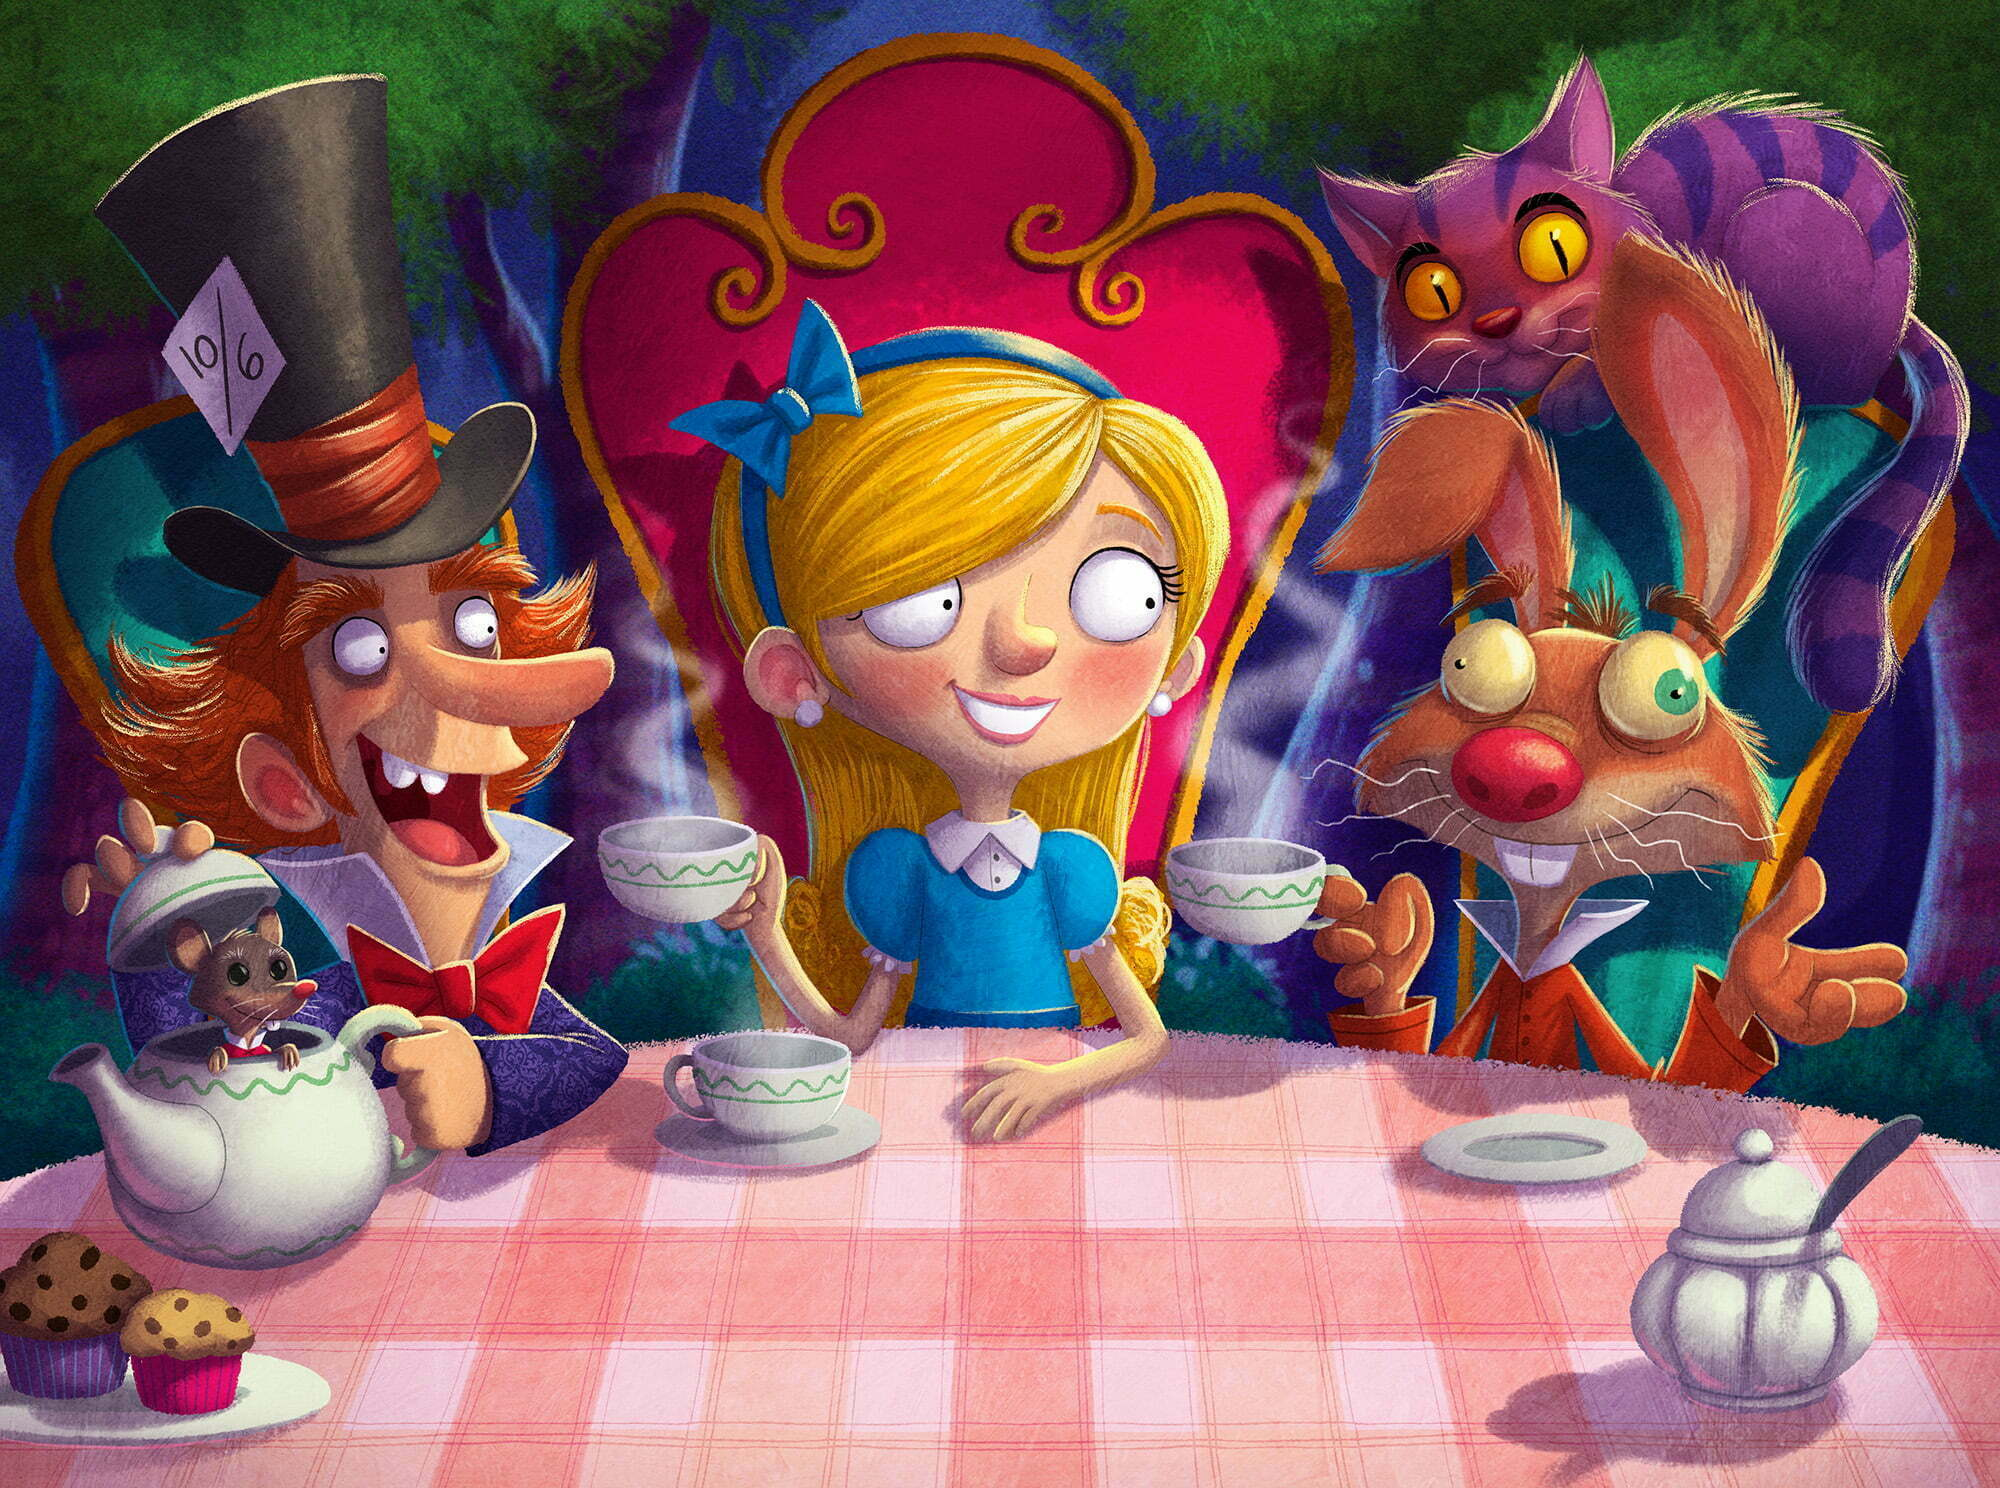 2D Alice in Wonderland Book Cover Illustration | Illustration Agency